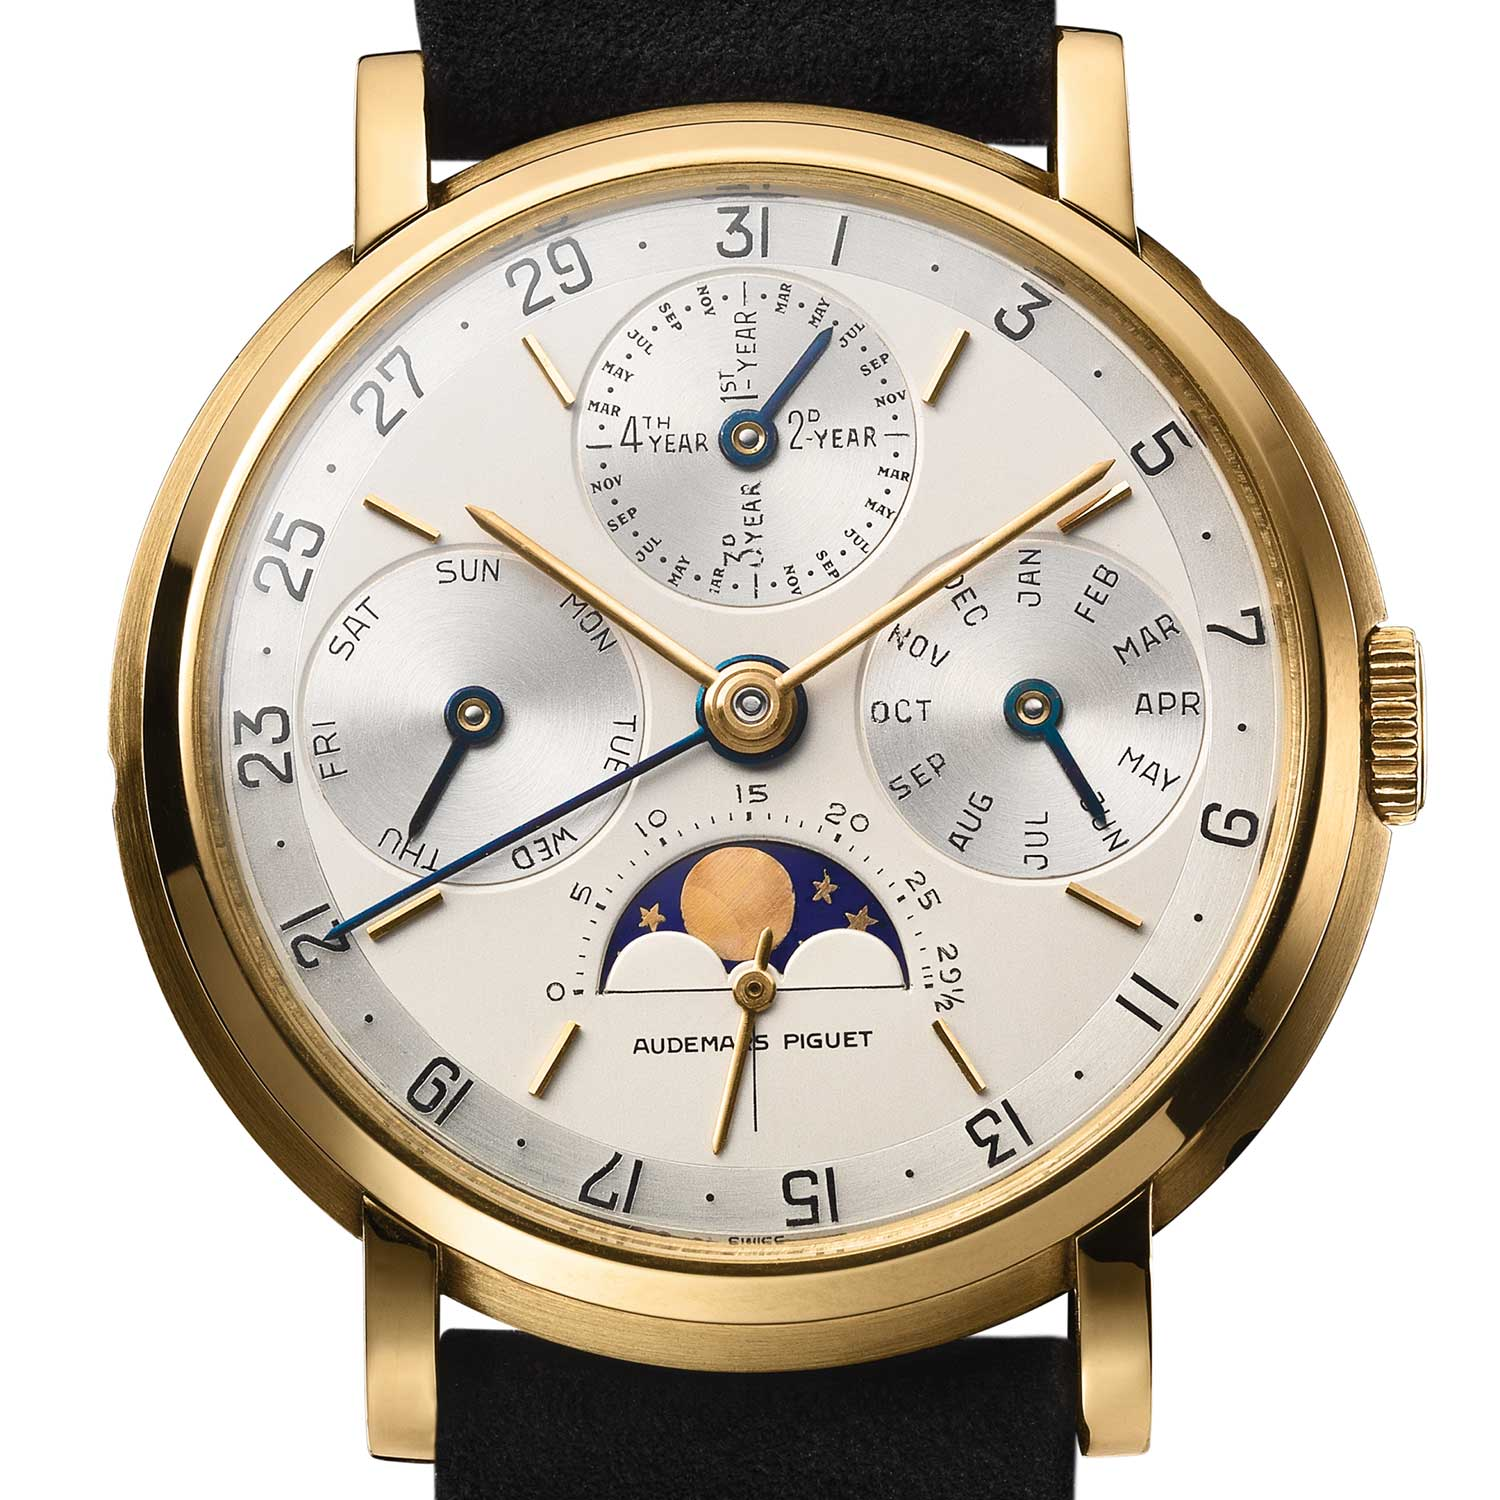 Perpetual calendar wristwatch. Movement and case No 73012. Calibre 13VZSSQP, 18-carat yellow gold case. Gold dial, silver-plated. Black enamel numerals and writing. Applied yellow gold hour-markers. Yellow gold timekeeping hands. Blued steel calendar hands. Movement made in 1957, watch sold in 1968 to Vacheron Constantin (Genève). Audemars Piguet Heritage Collection, Inv. 1716.